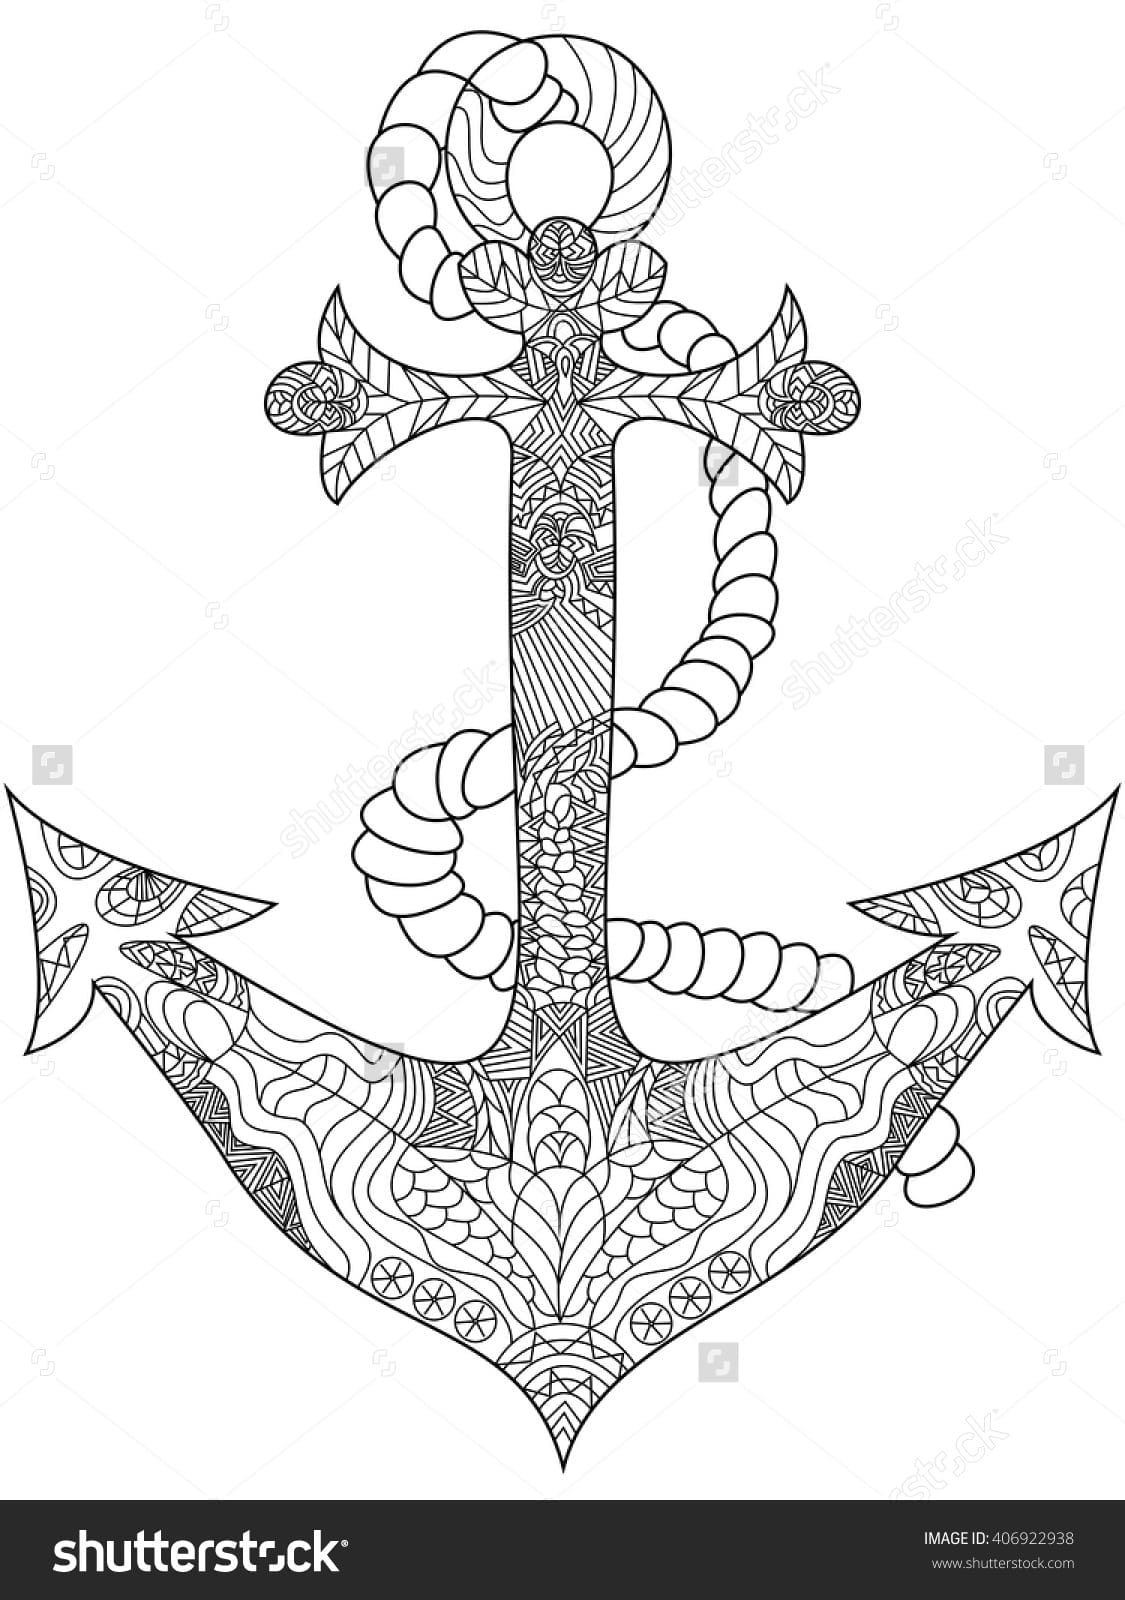 Highest Coloring Pages Of Anchors Musely For C  6201